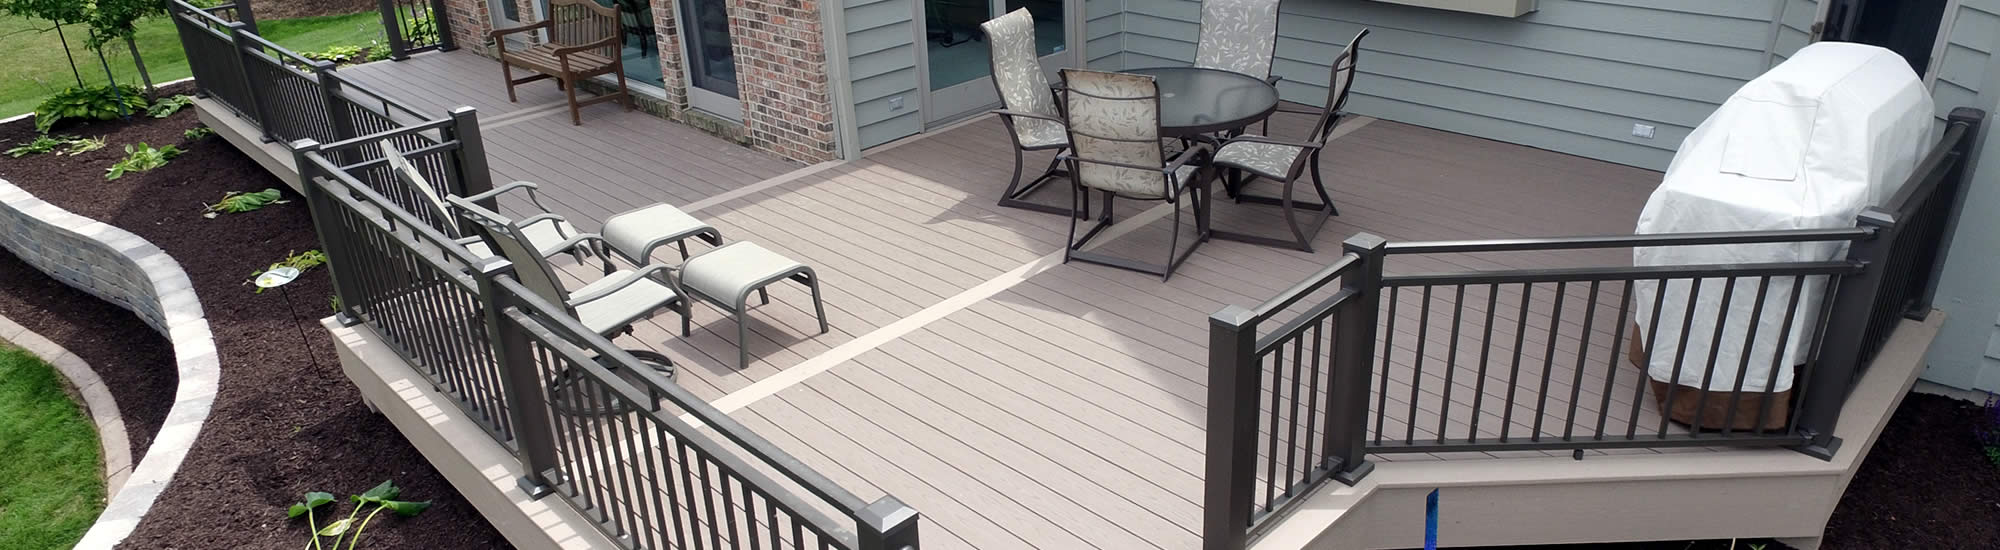 Deck Installation Services near me